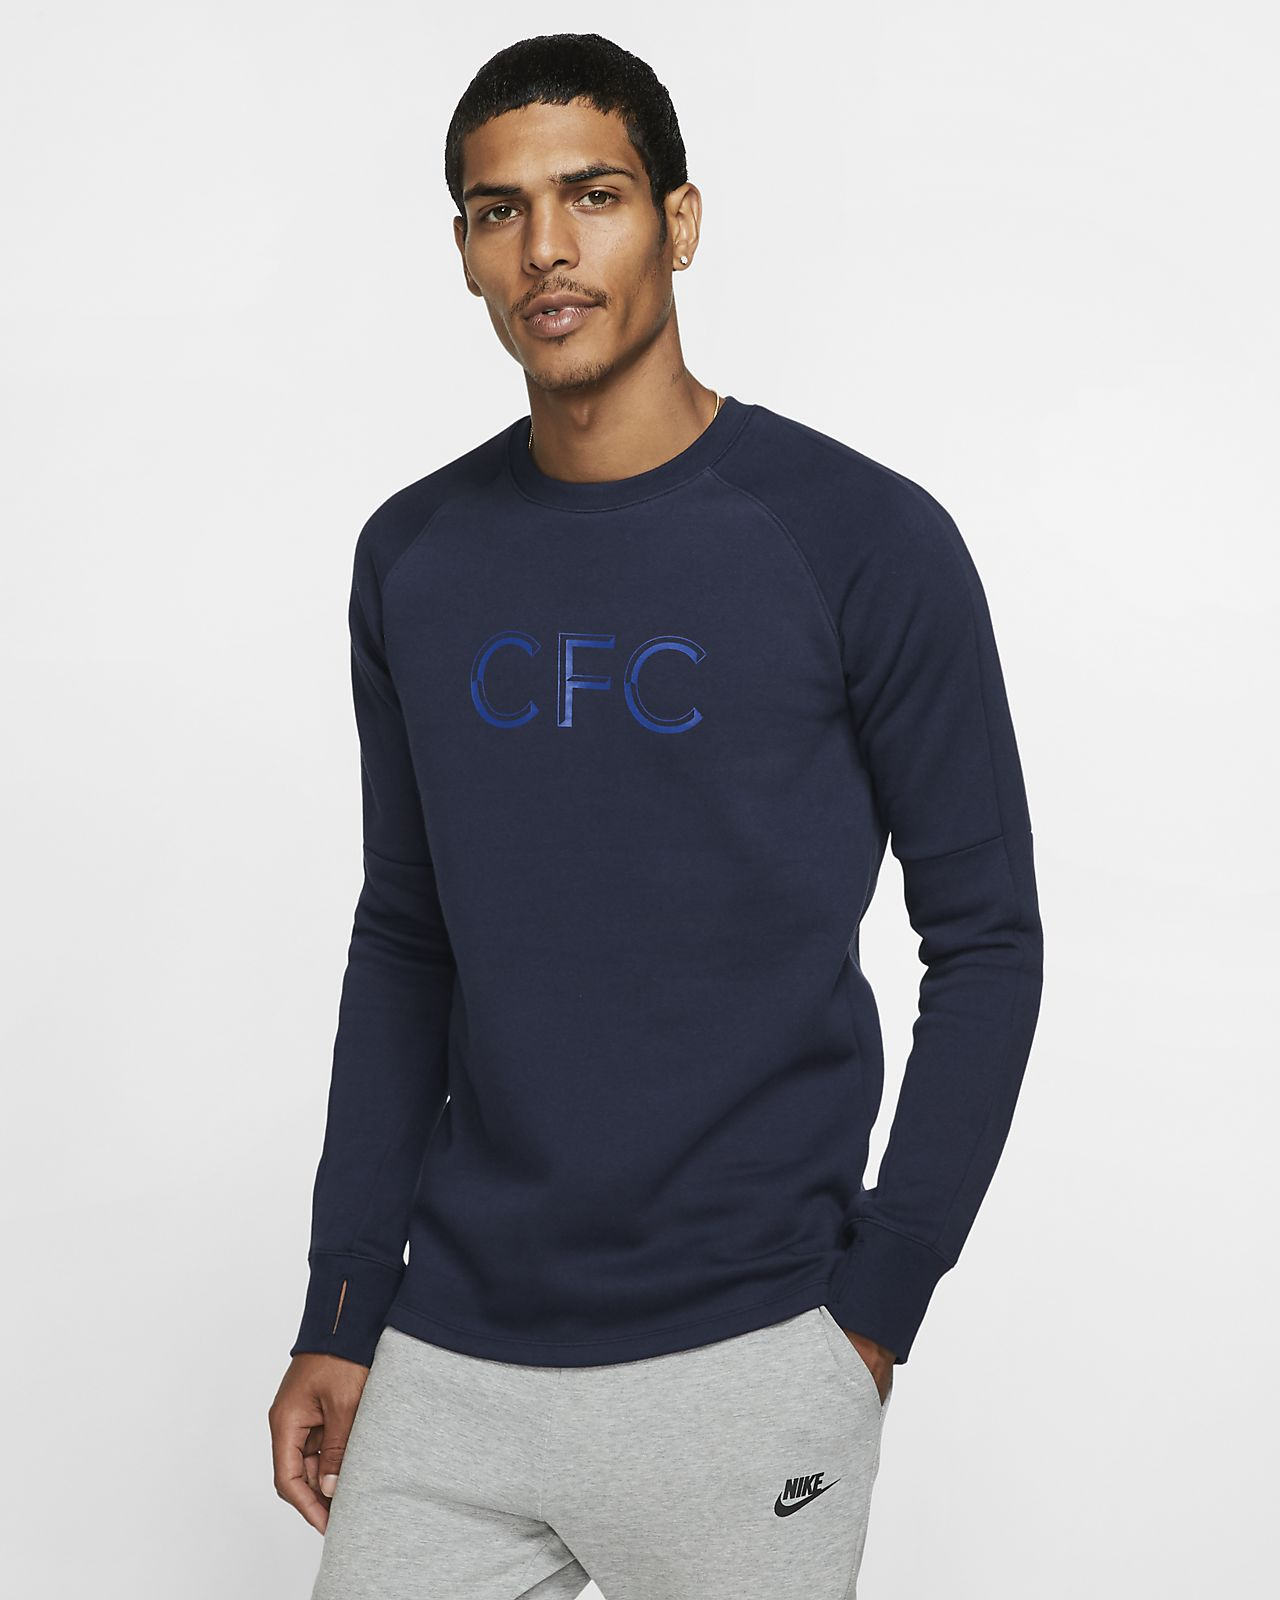 Chelsea FC Men's Fleece Crew